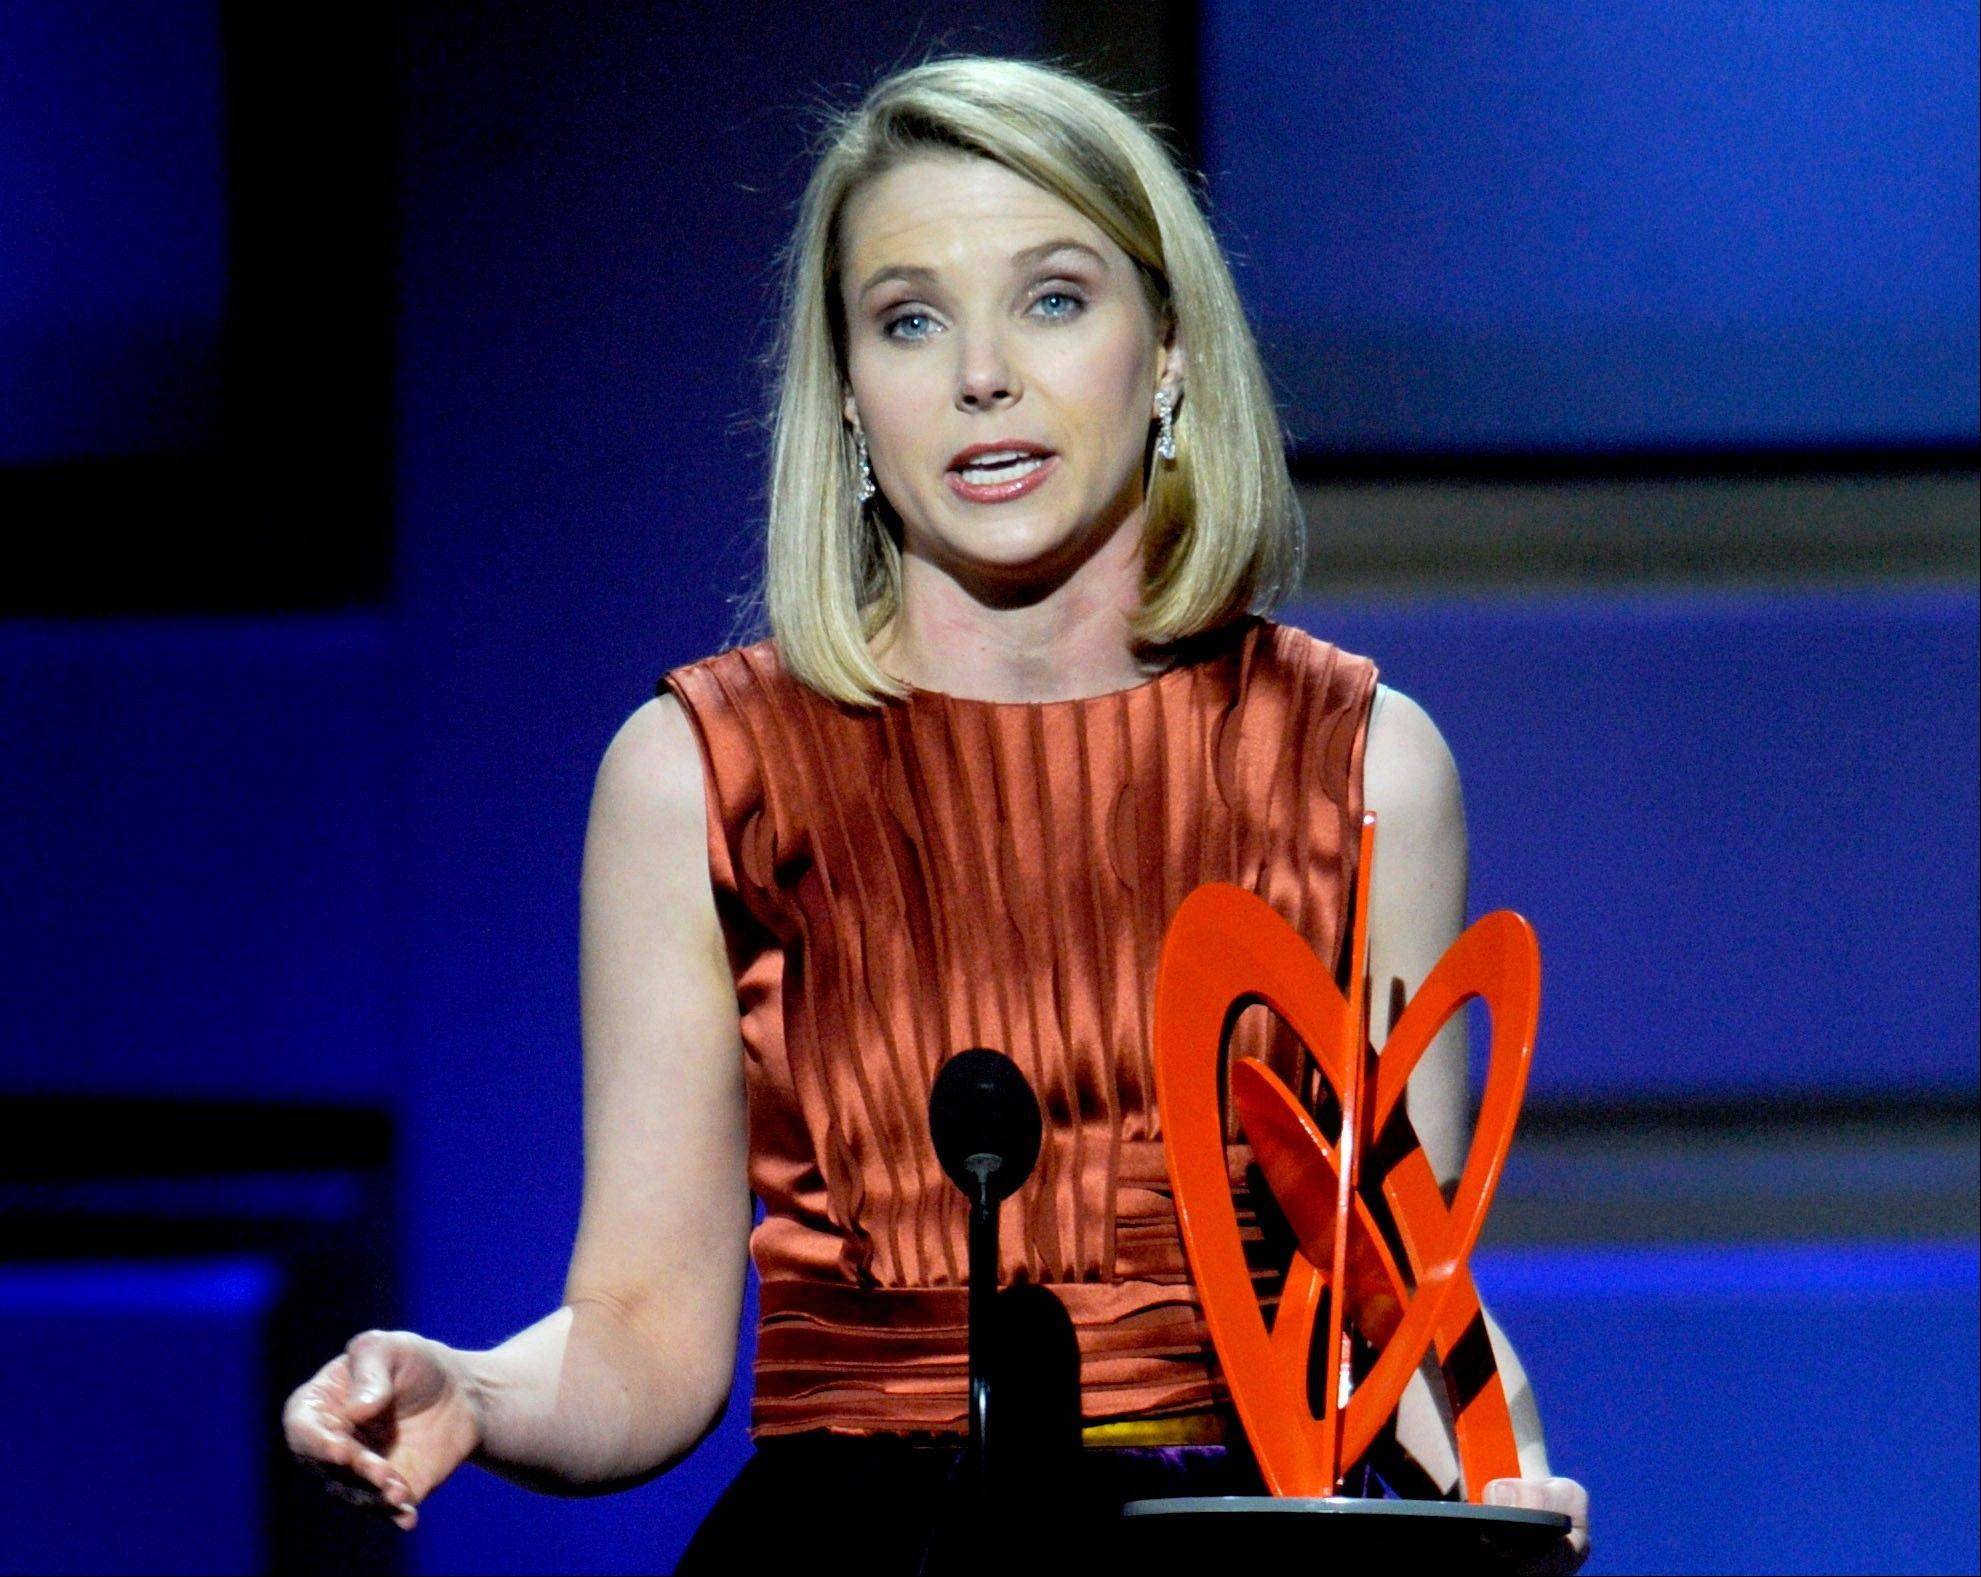 CEO Marissa Mayer has embarked on an aggressive strategy in an effort to turn Yahoo�s fortunes around.